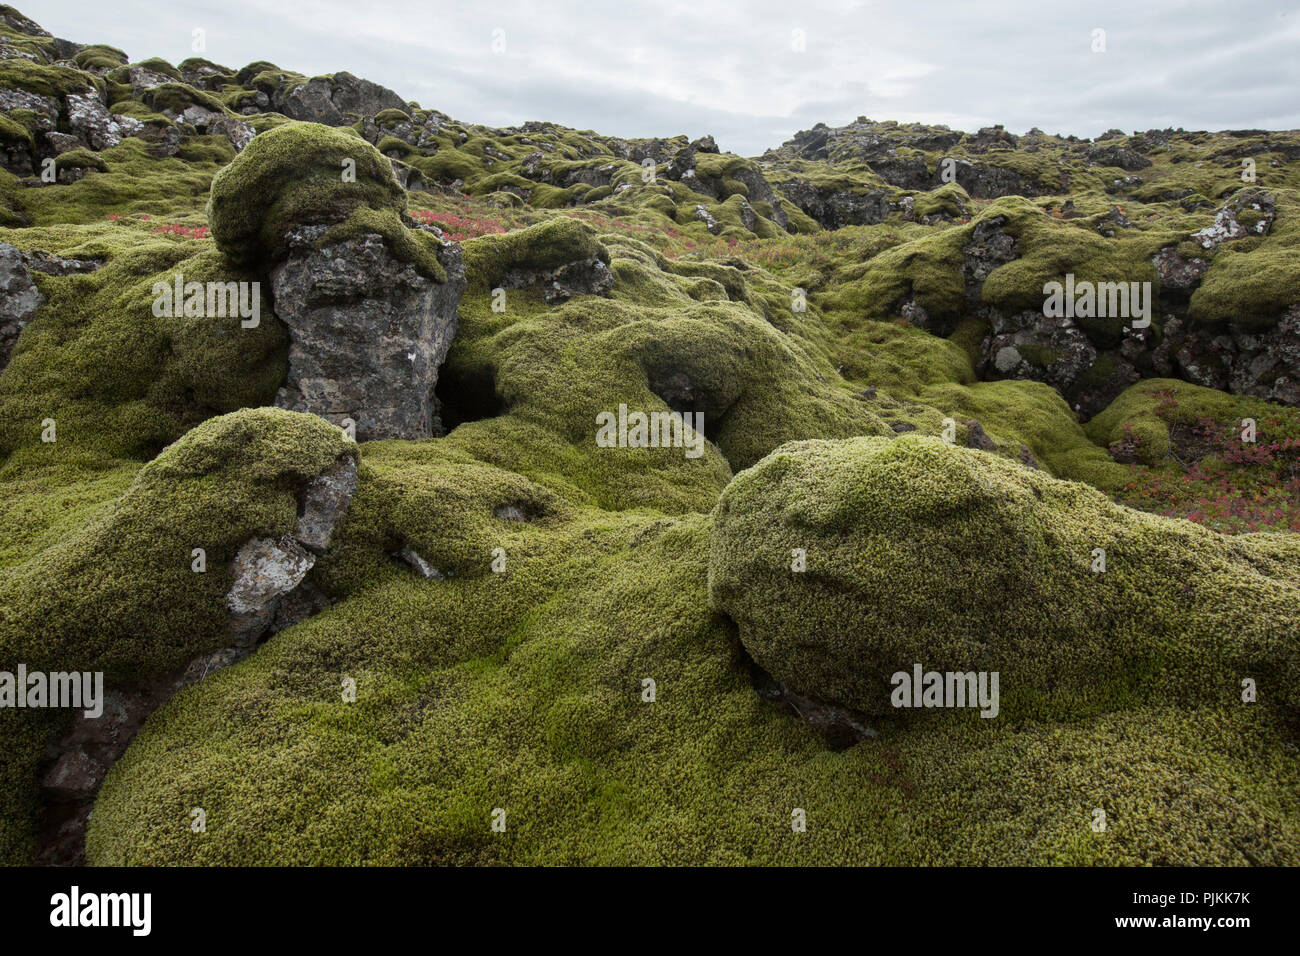 Iceland, moss-covered lava rocks, pillow-shaped, face in moss, red cranberry foliage Stock Photo